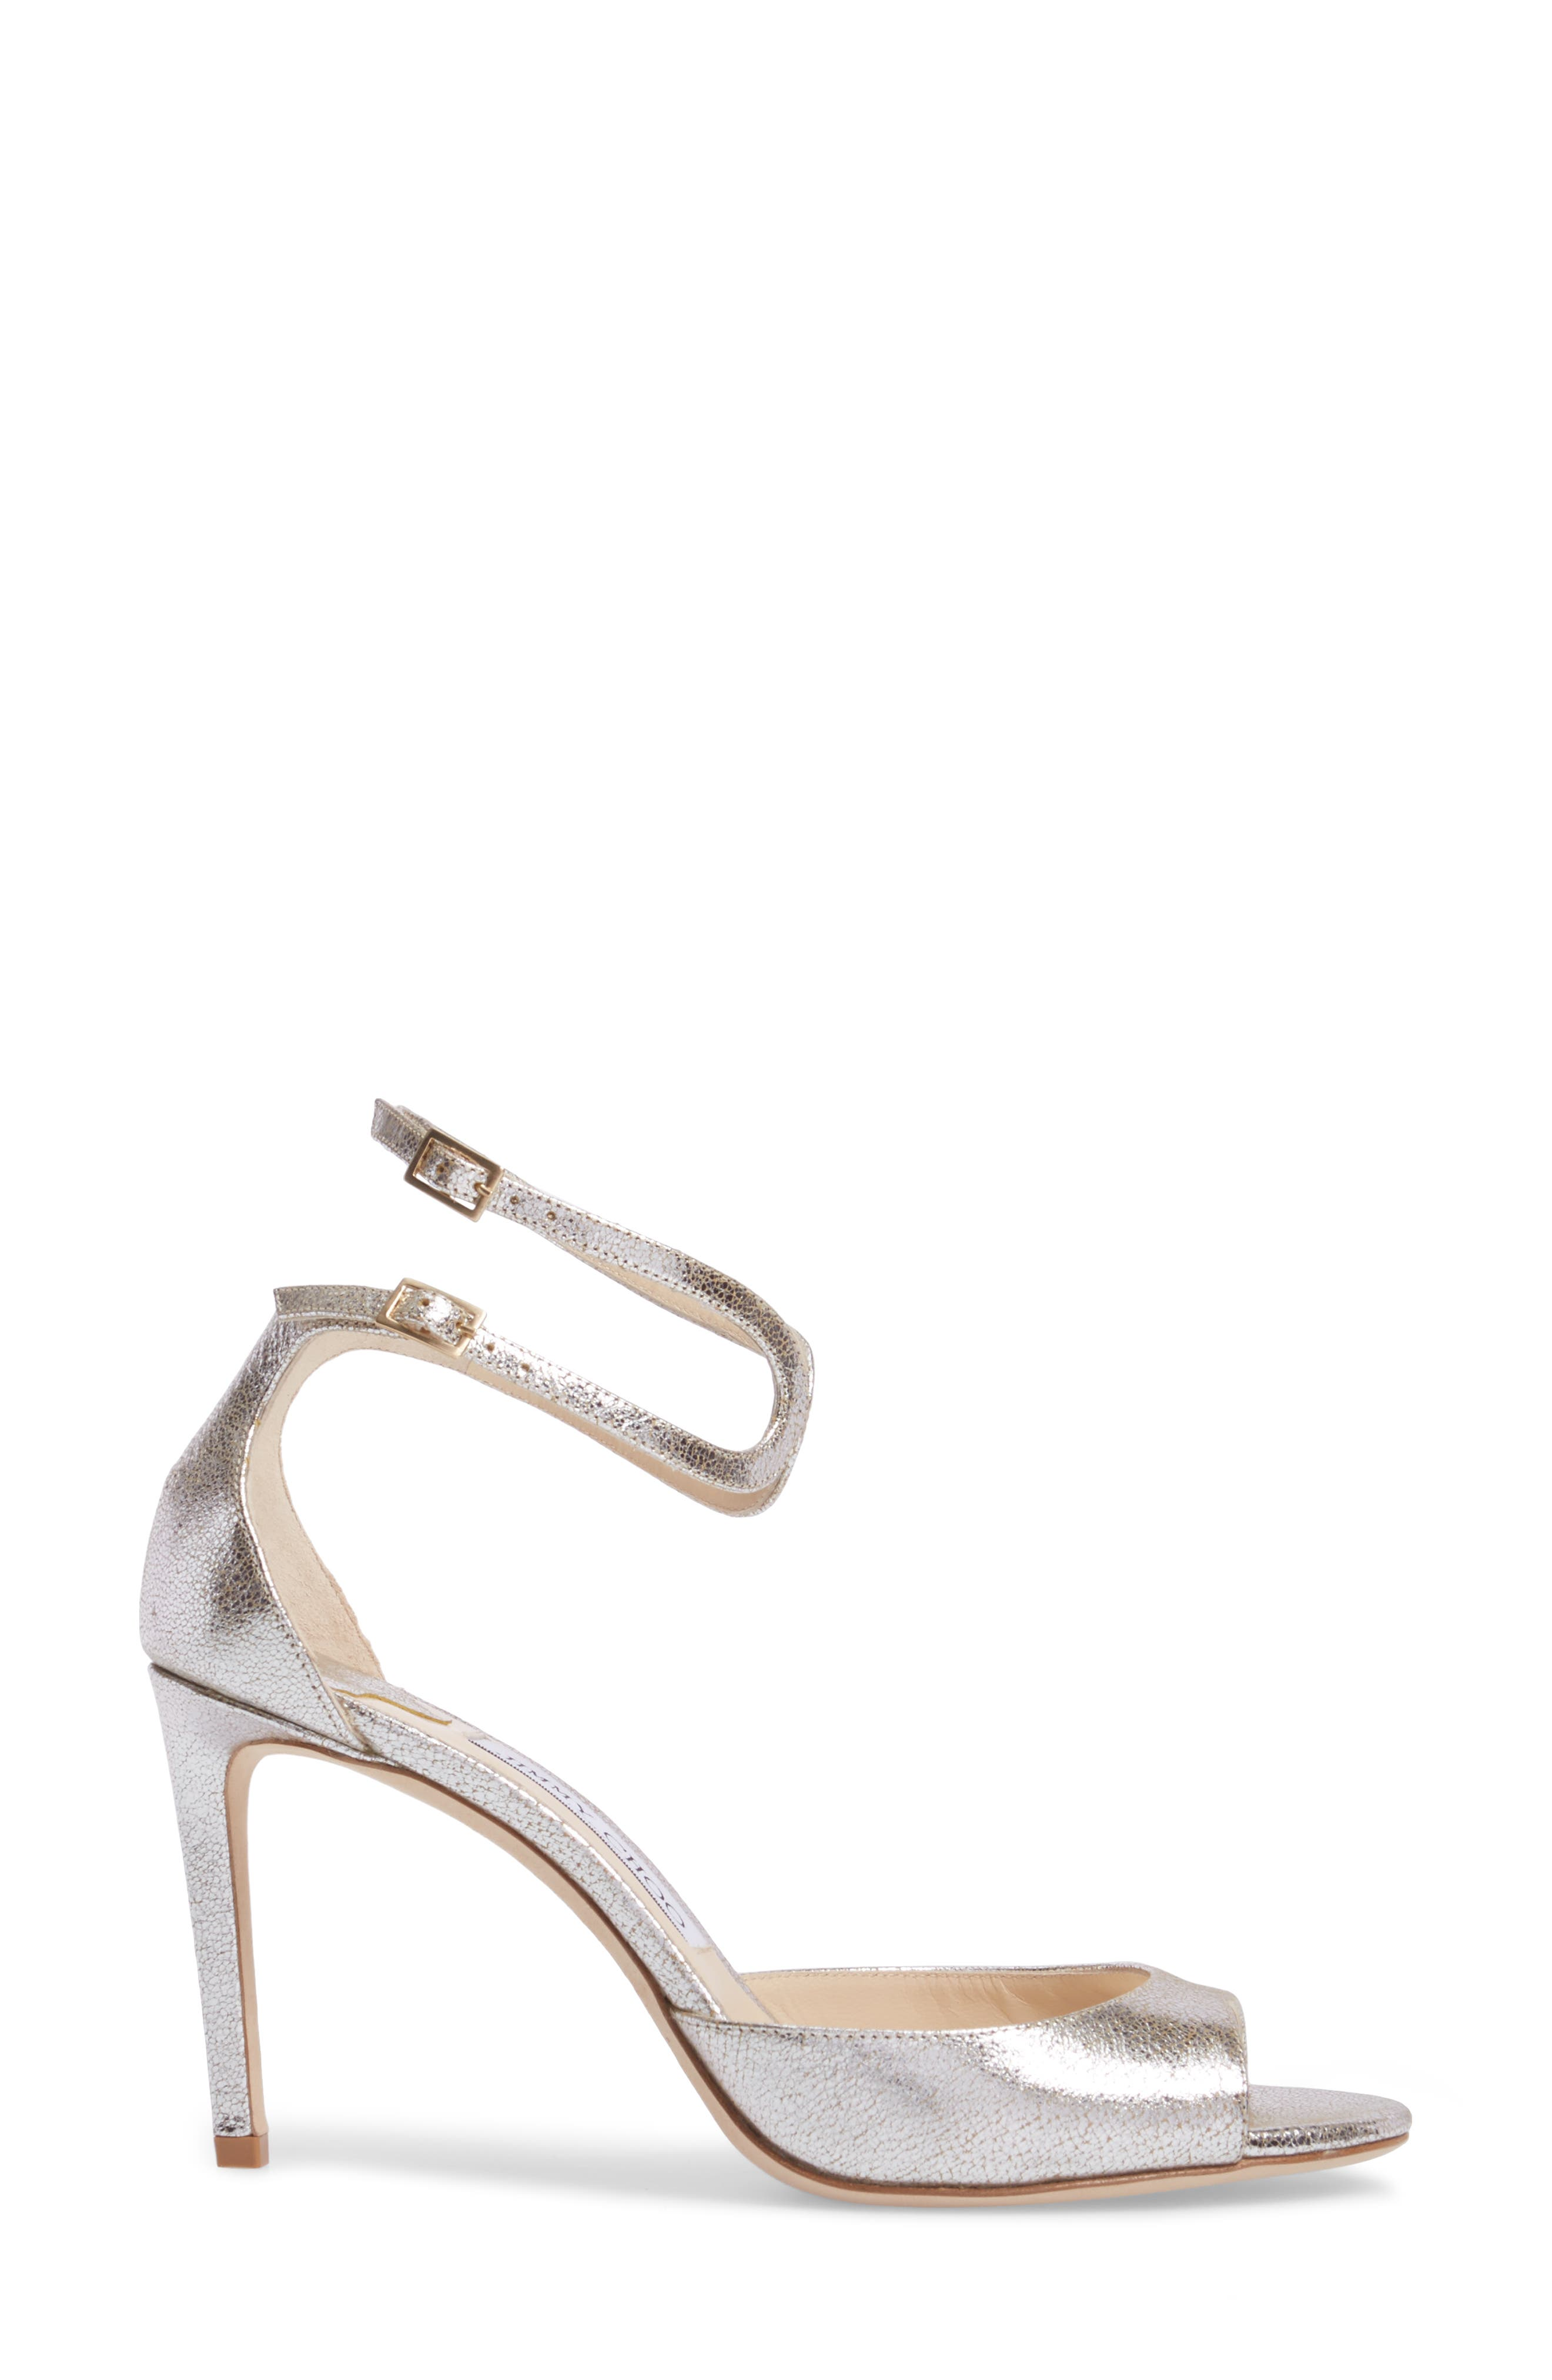 Alternate Image 3  - Jimmy Choo Lane d'Orsay Sandal (Women)